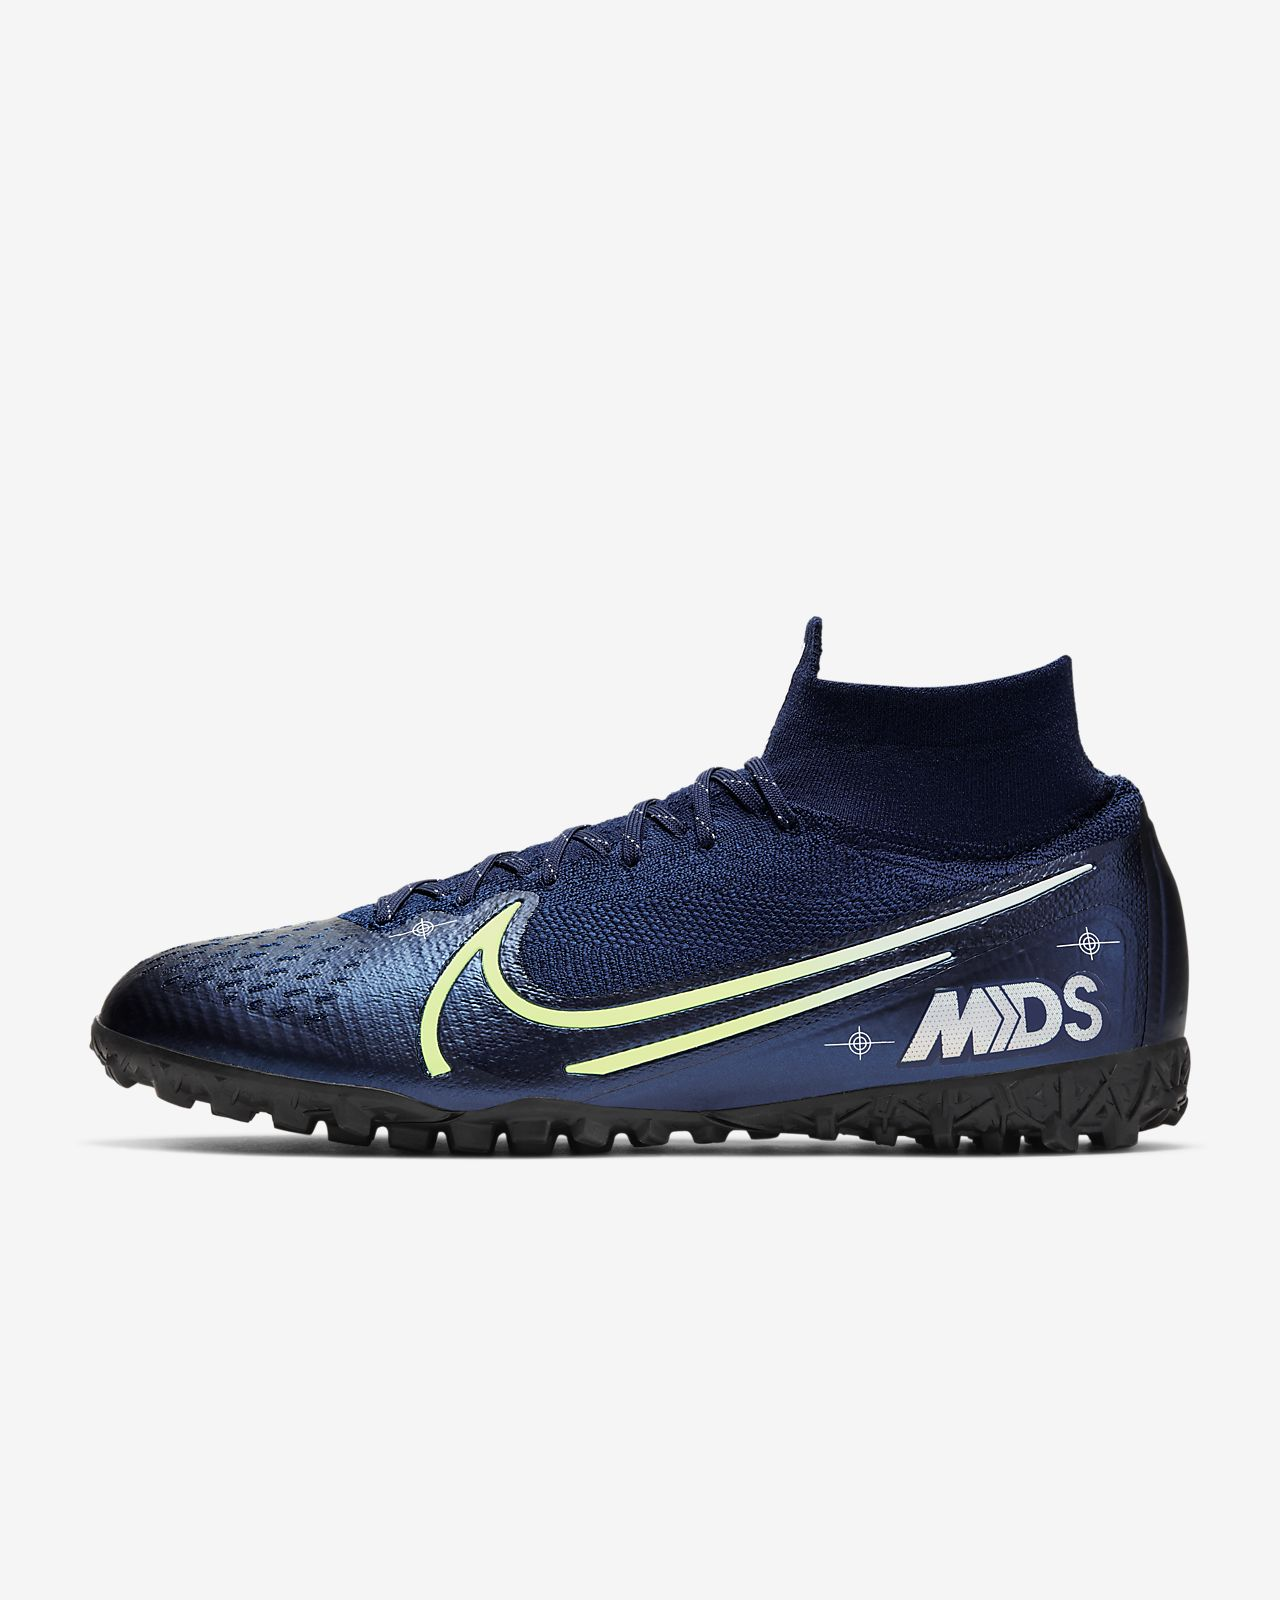 Nike Mercurial Superfly 7 Elite MDS TF Artificial-Turf Football Shoe